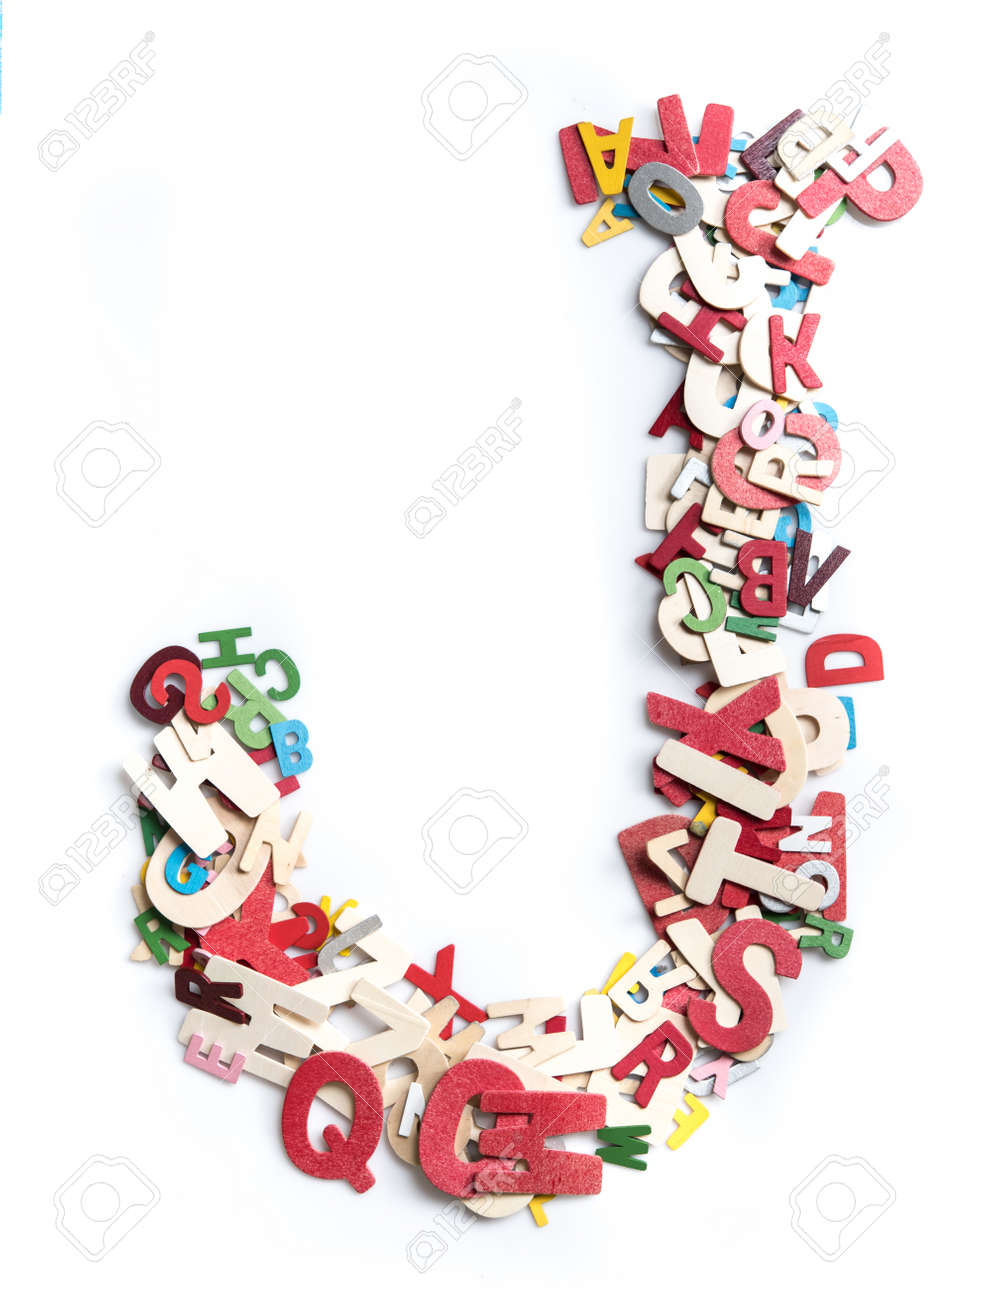 Colorful wood alphabet letters on white background,letter J - 115241585